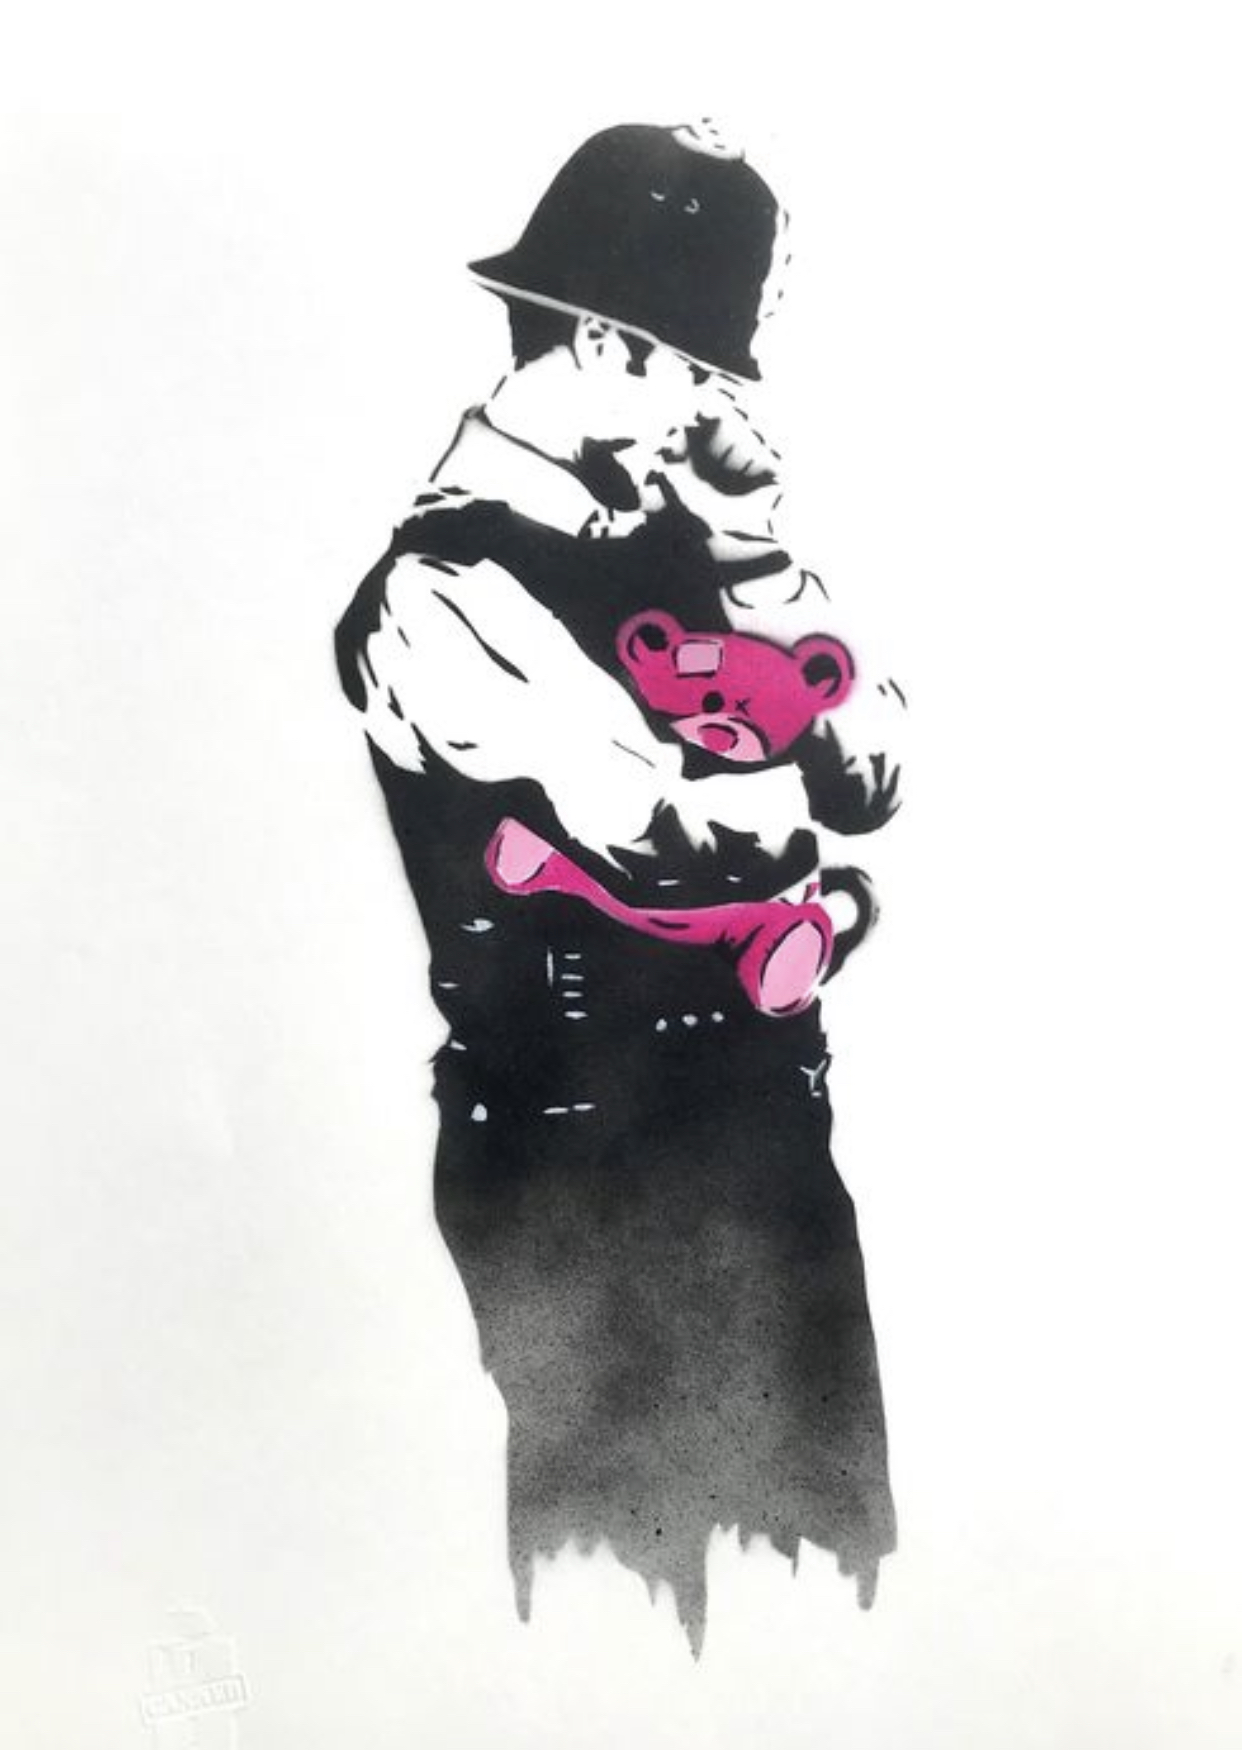 CANNED-MOFART'Z 'BABY COP' - 2020 - Image 4 of 4